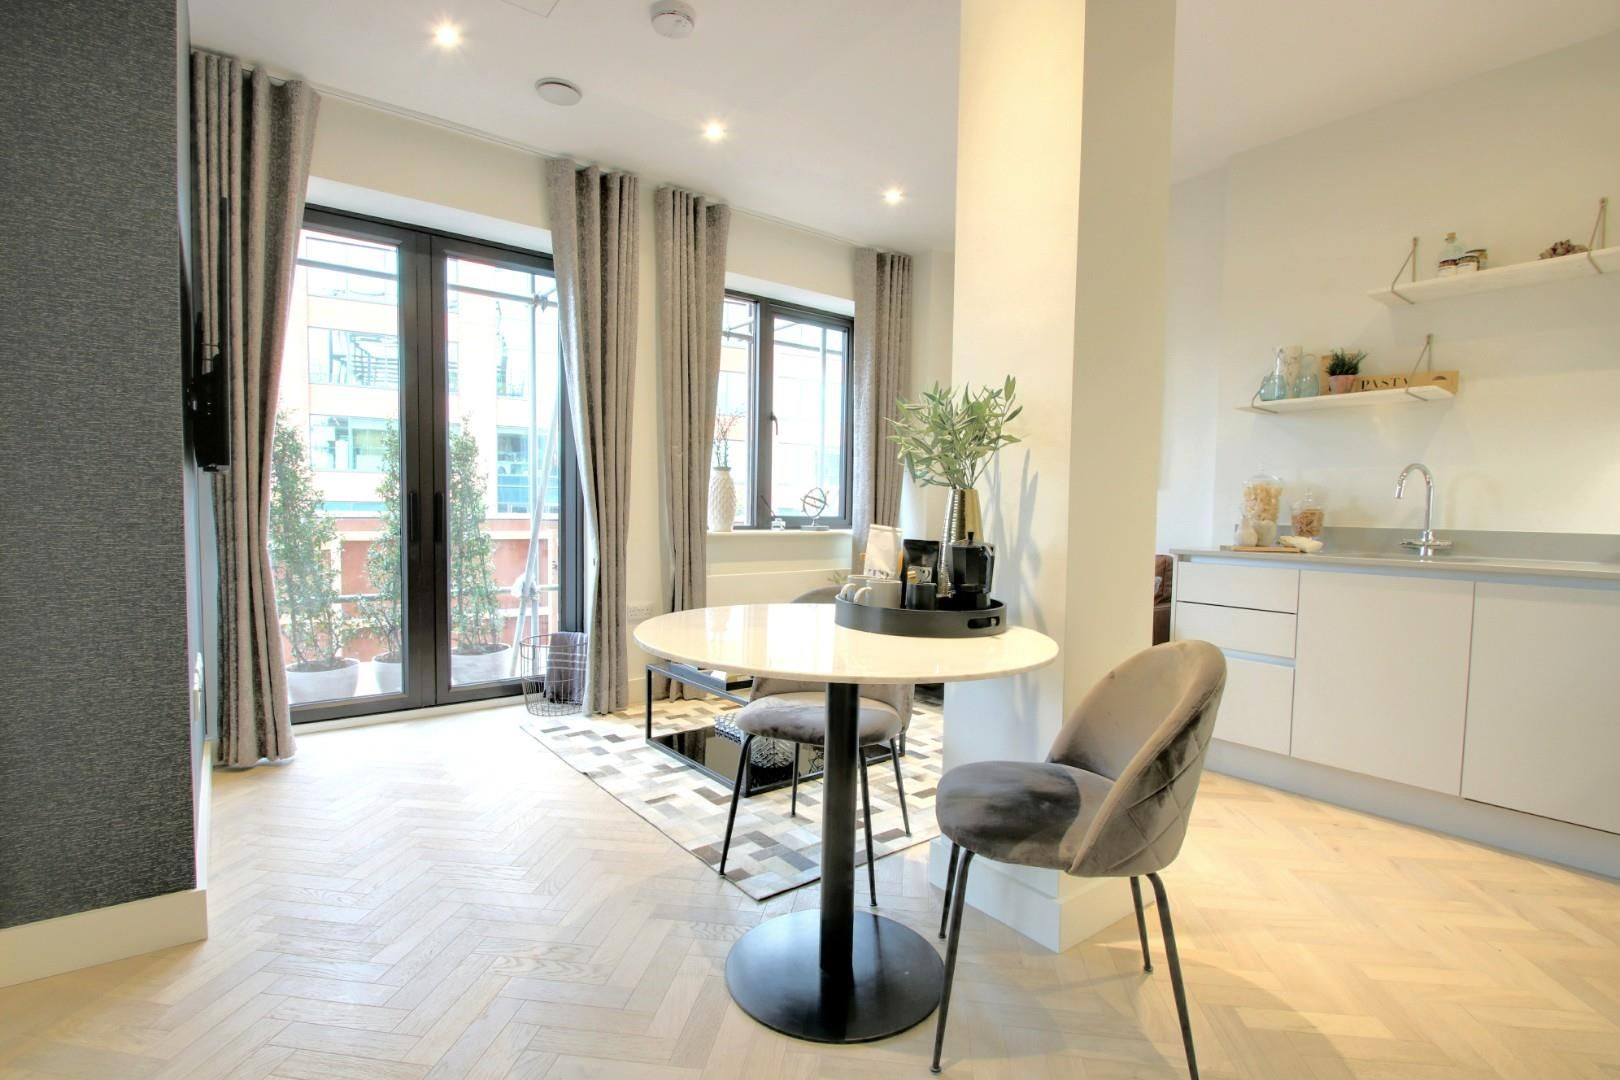 2 bed apartment for sale, SL1